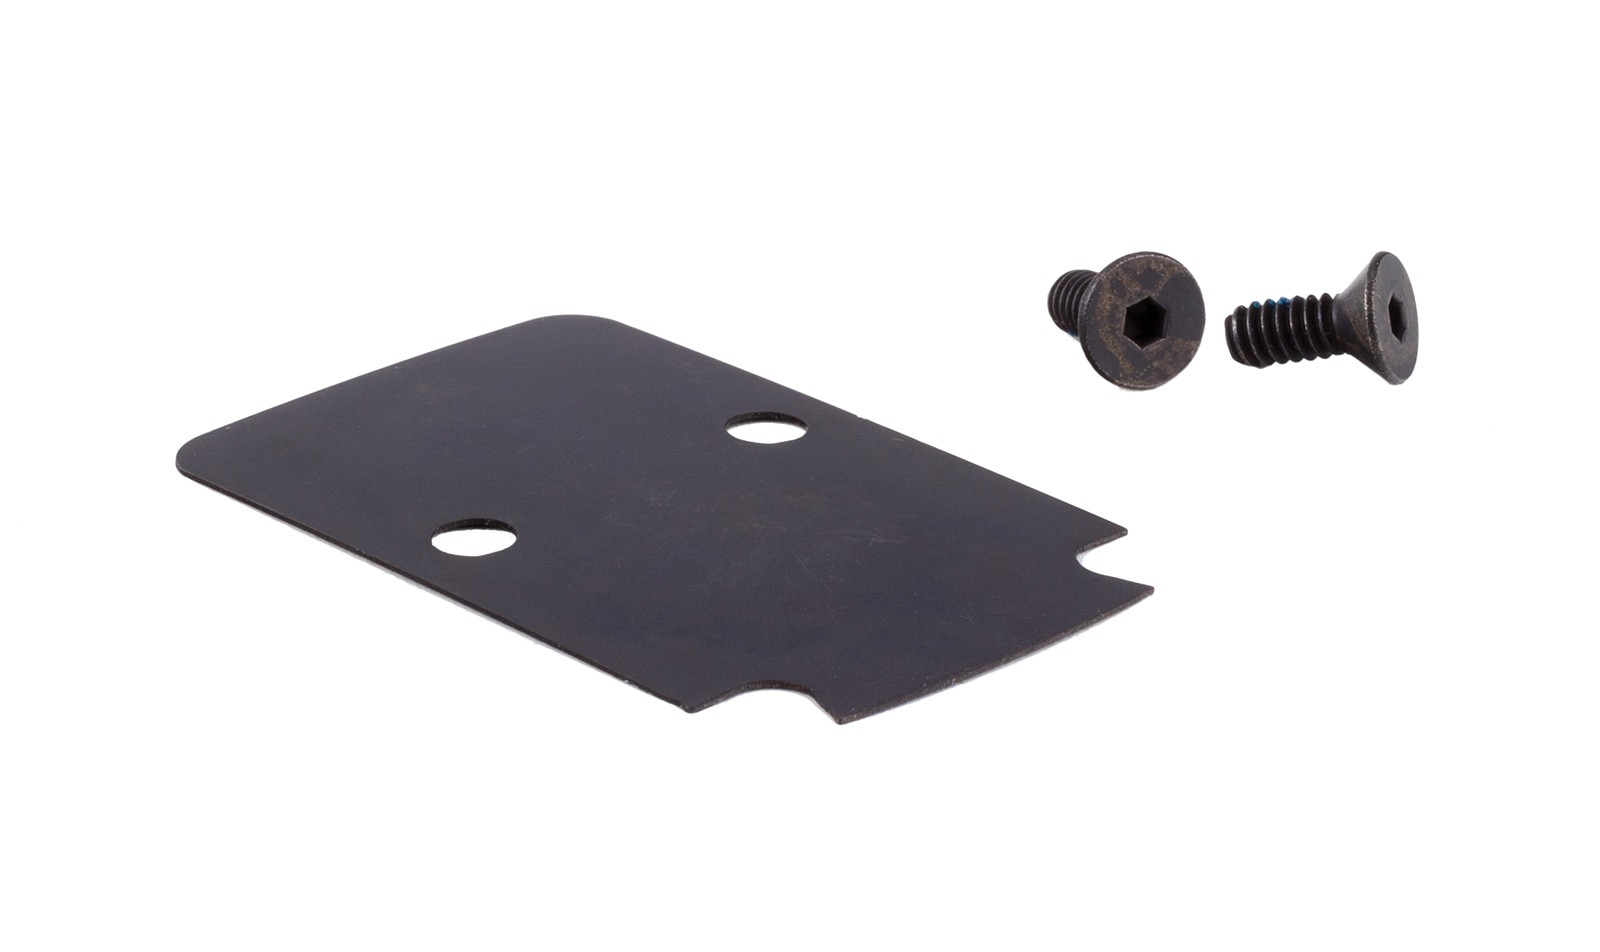 RMR®/SRO™ Mounting Kit - Fits Glock MOS and Springfield OSP Models